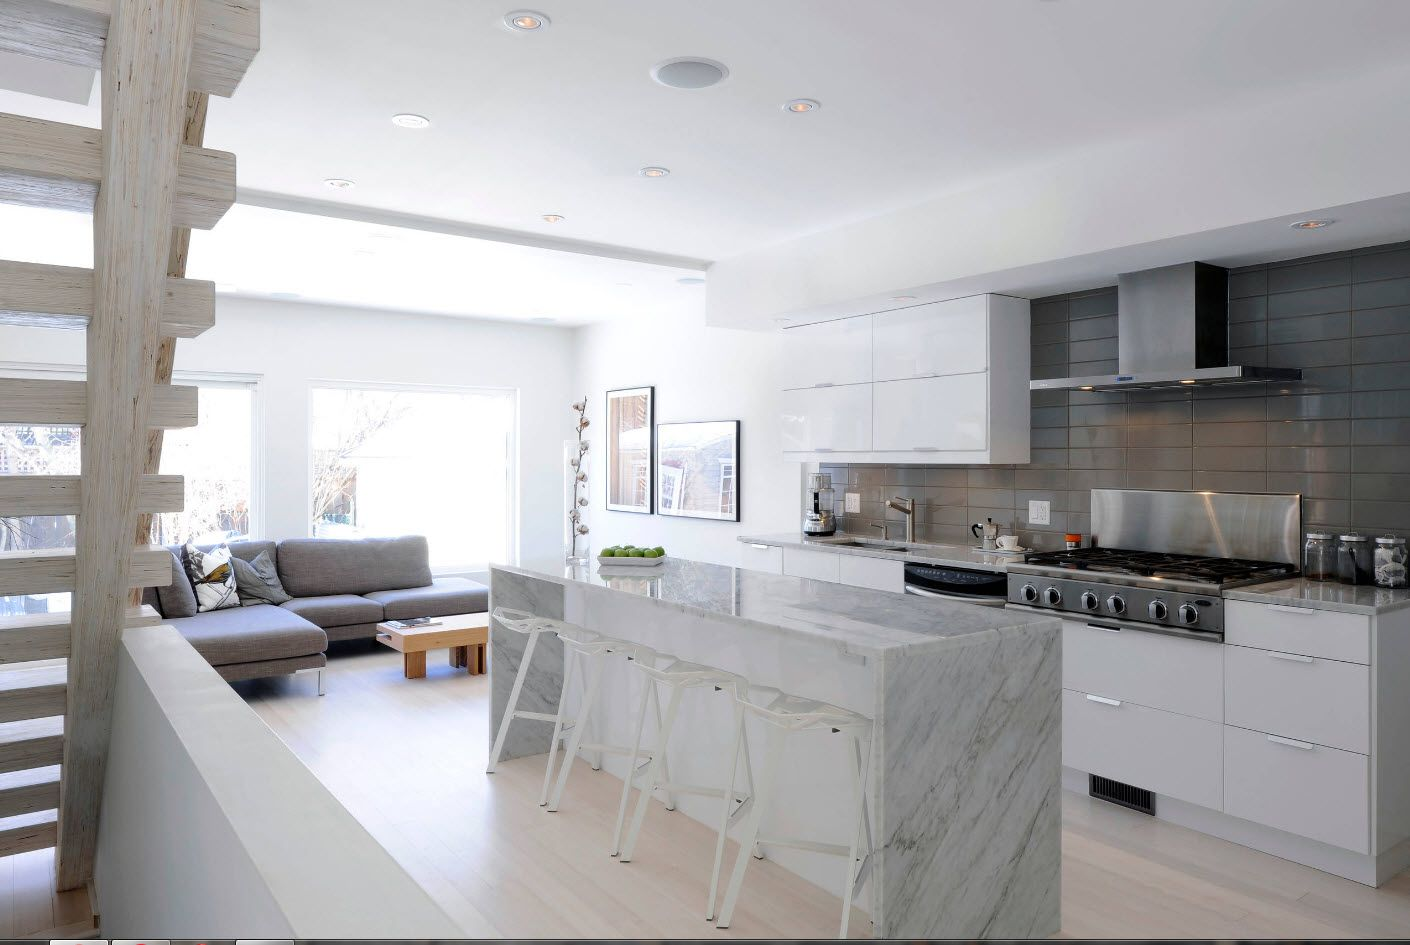 Marble sides of kitchen island in the center